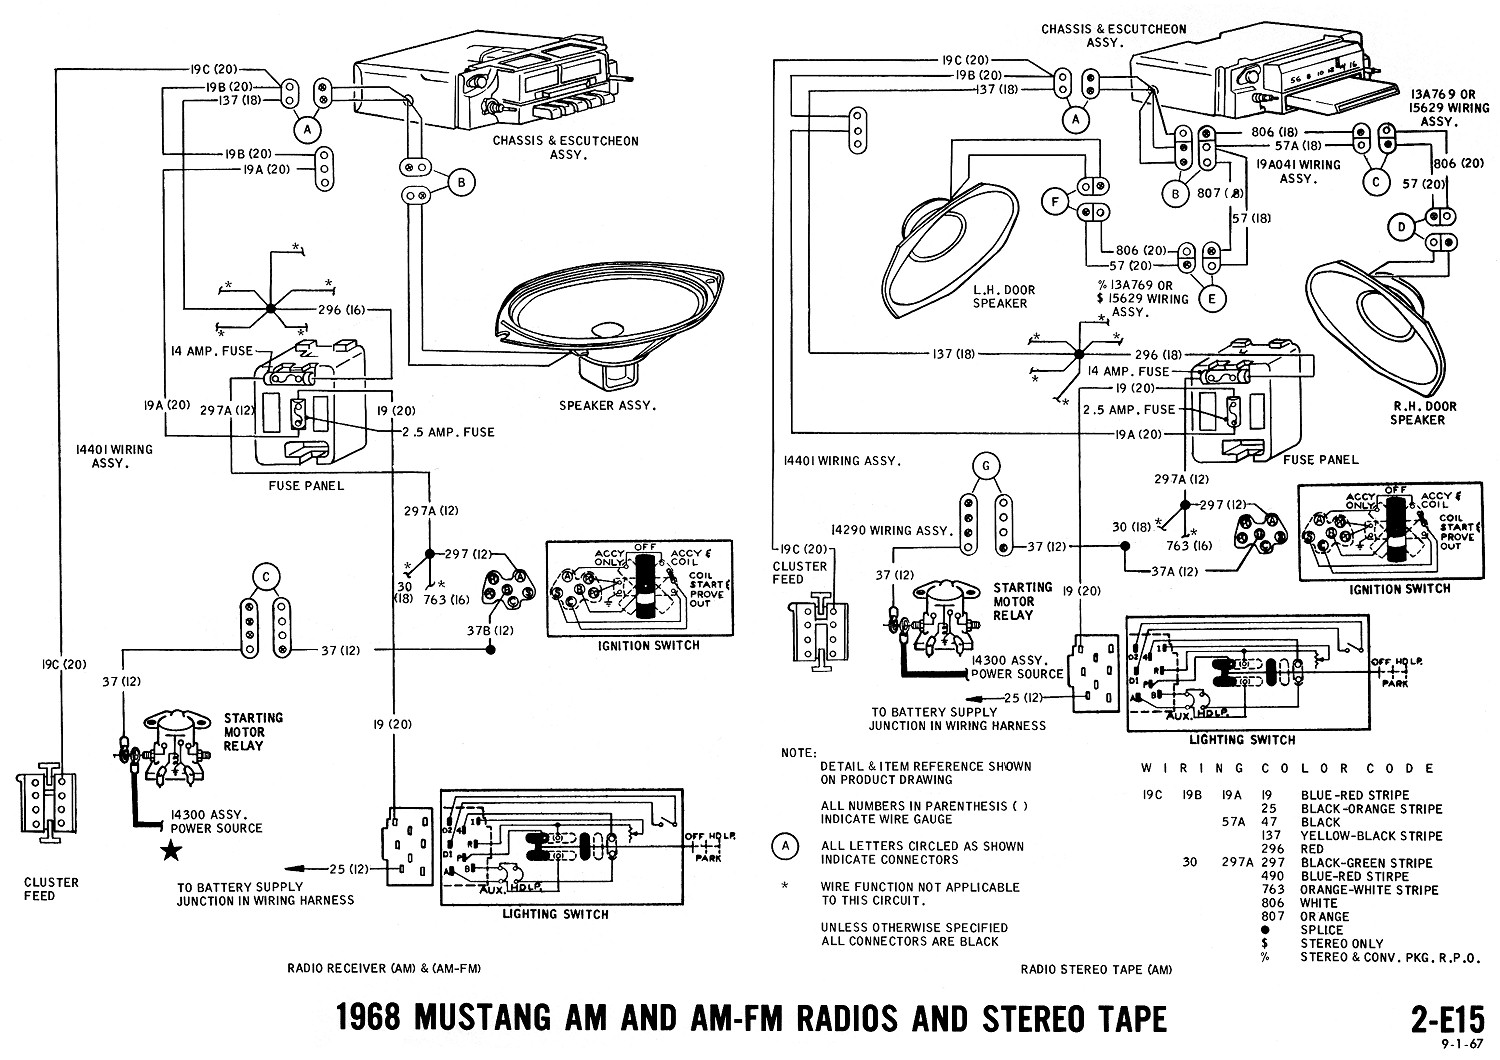 1970 Chevelle Radio Wiring Diagram Guide And Troubleshooting Of 72 Wiper Motor 65 Mustang Third Level Rh 17 16 11 Jacobwinterstein Com 1972